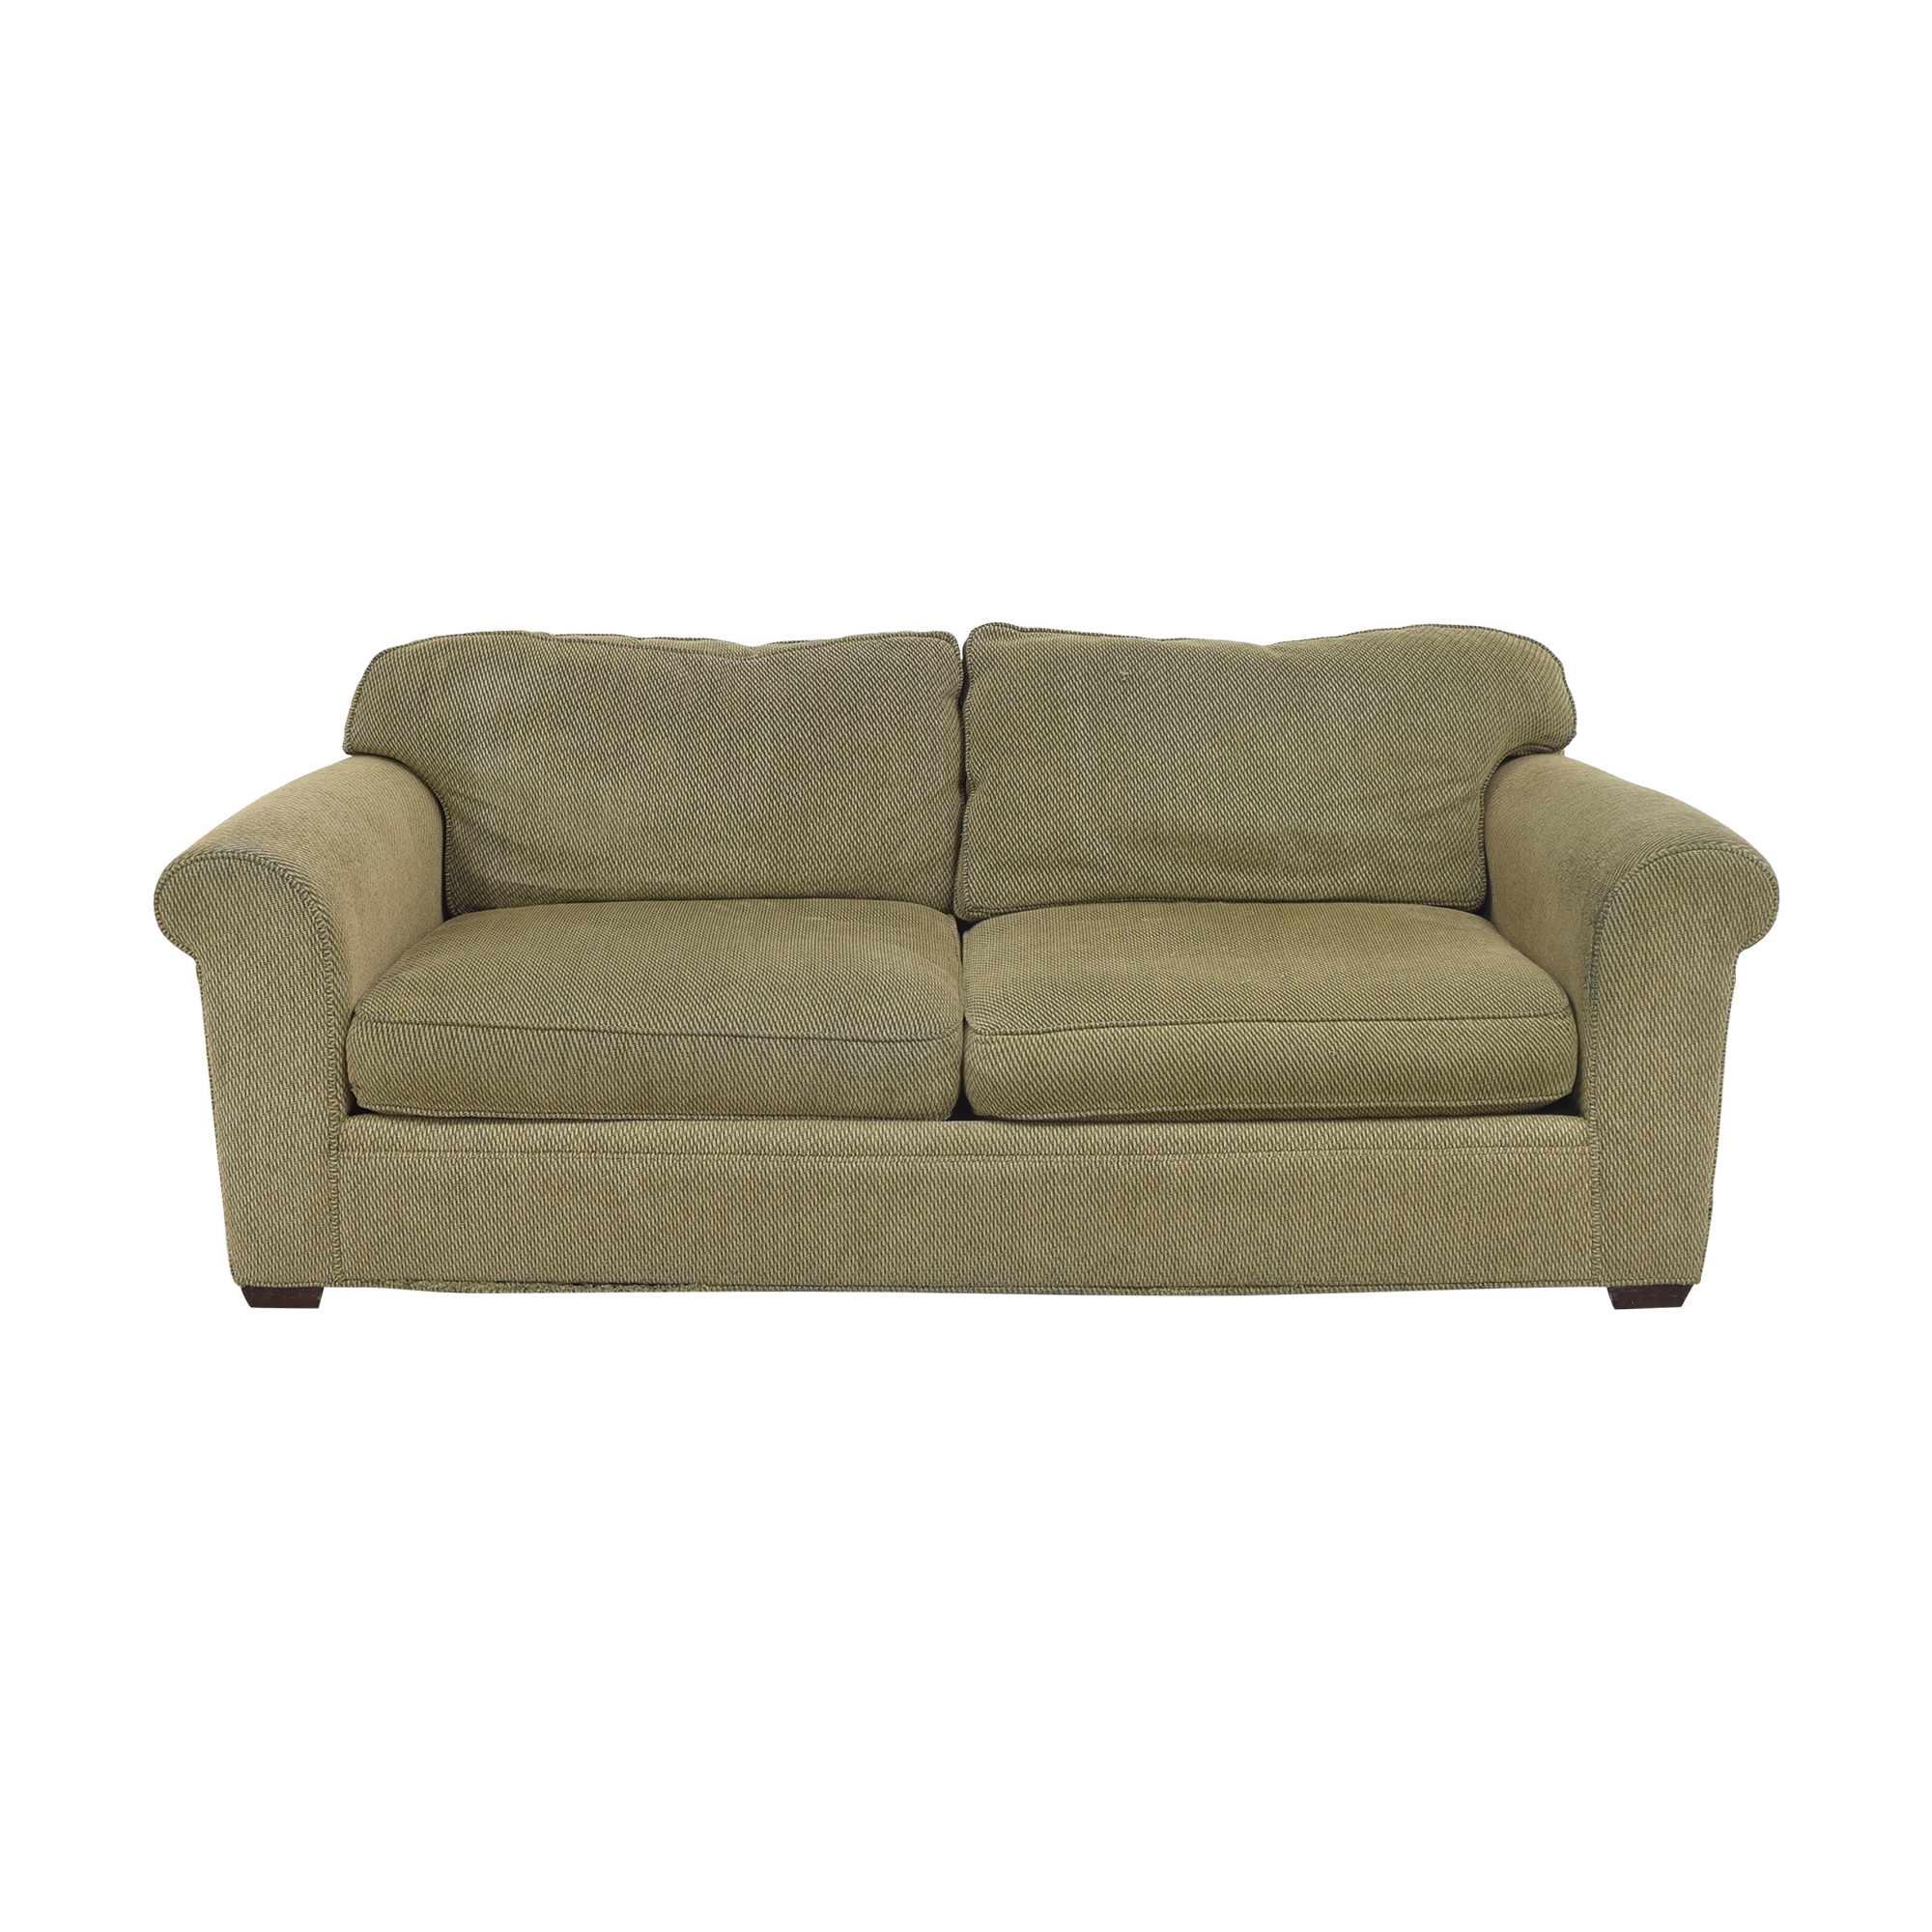 shop Crate & Barrel Two Cushion Sofa Crate & Barrel